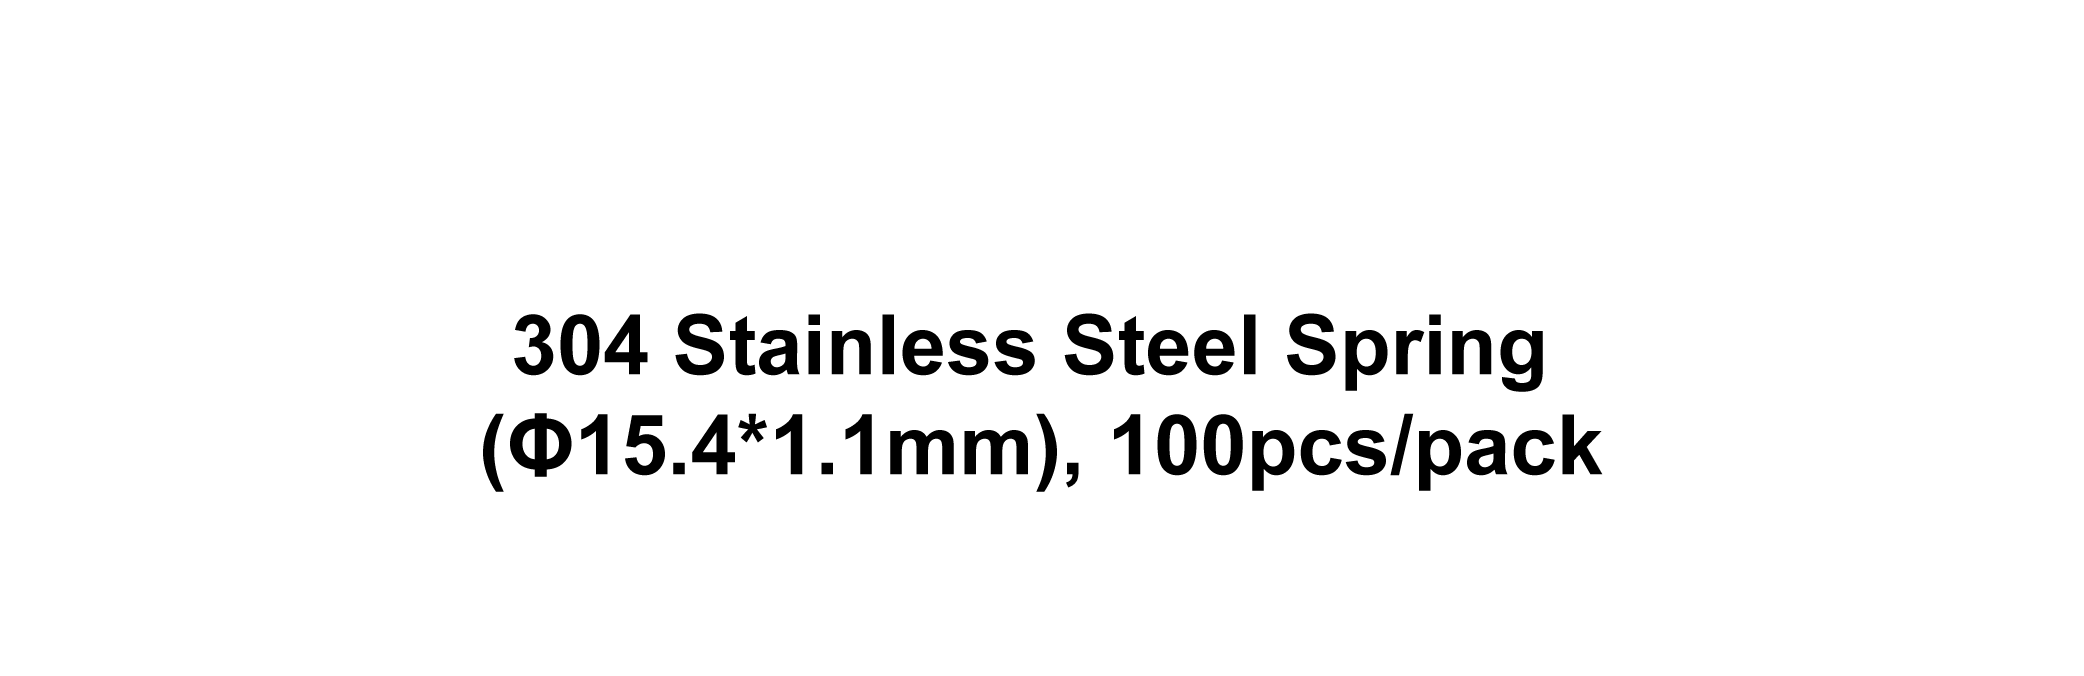 304 Stainless Steel Spring (Φ15.4*1.1mm), 100pcs/pack